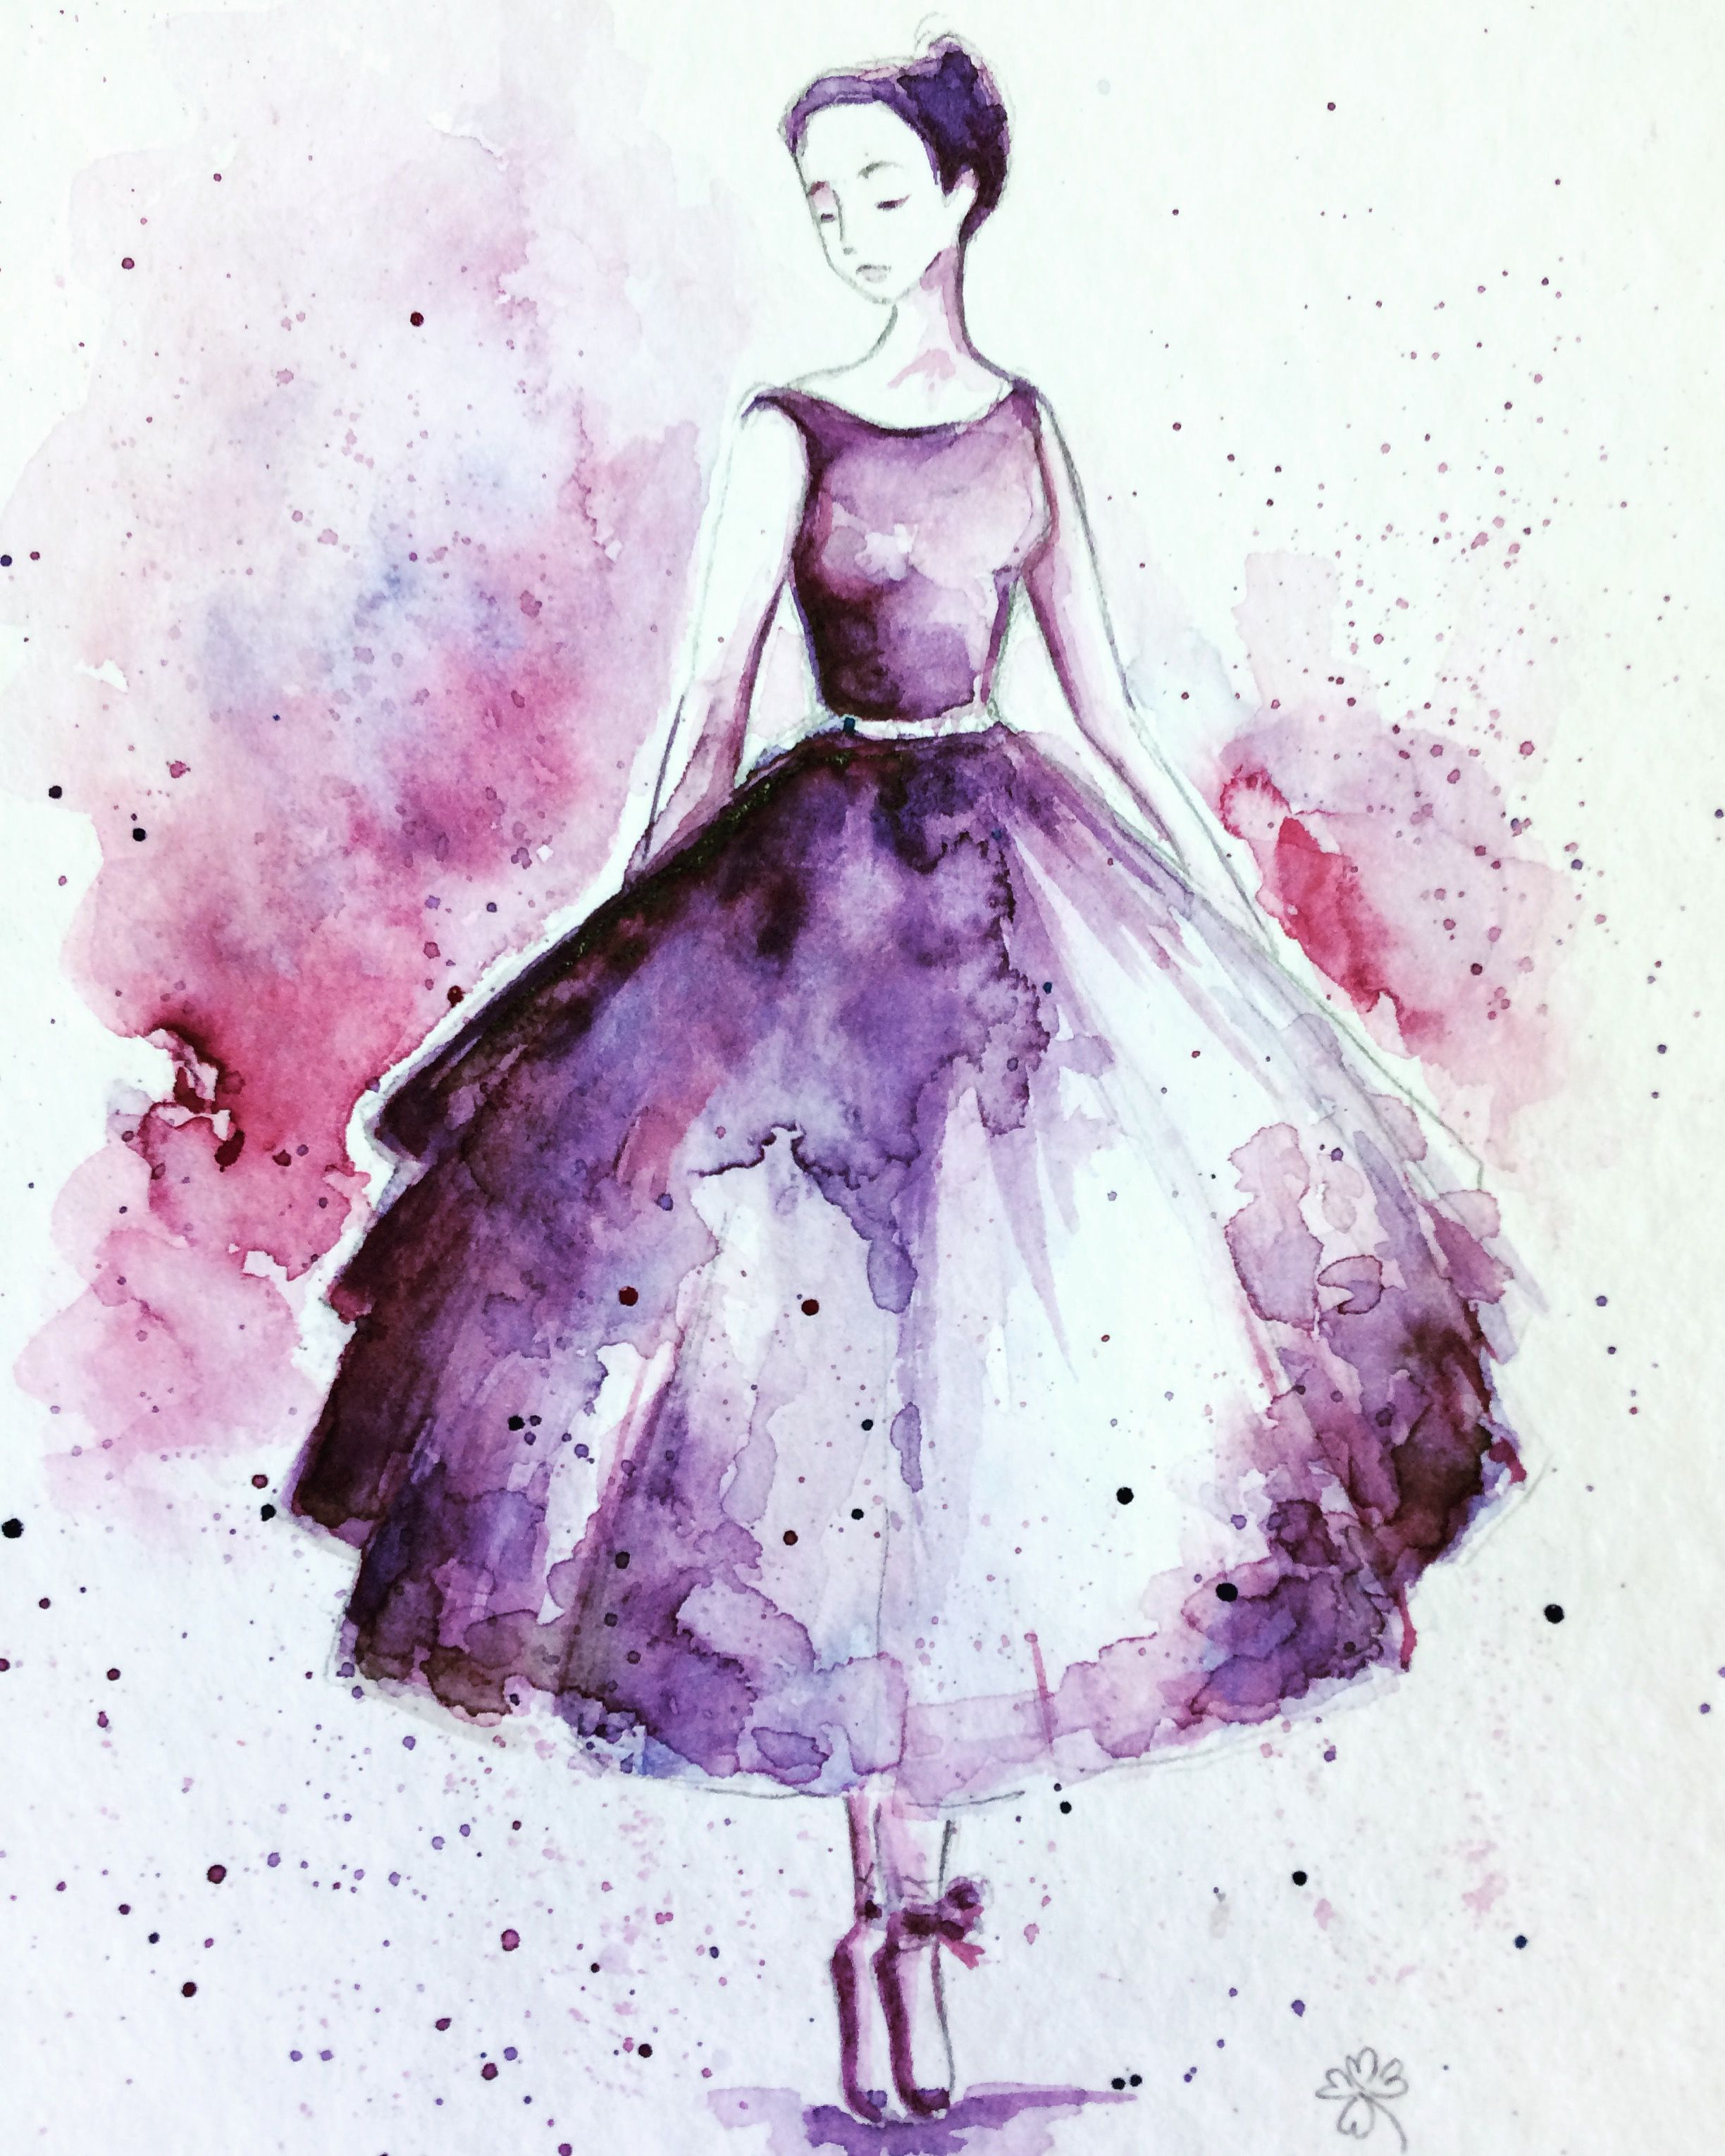 Pin By Dj Mccance On Great Ideas Fashion Illustration Watercolor Watercolor Fashion Dancers Art